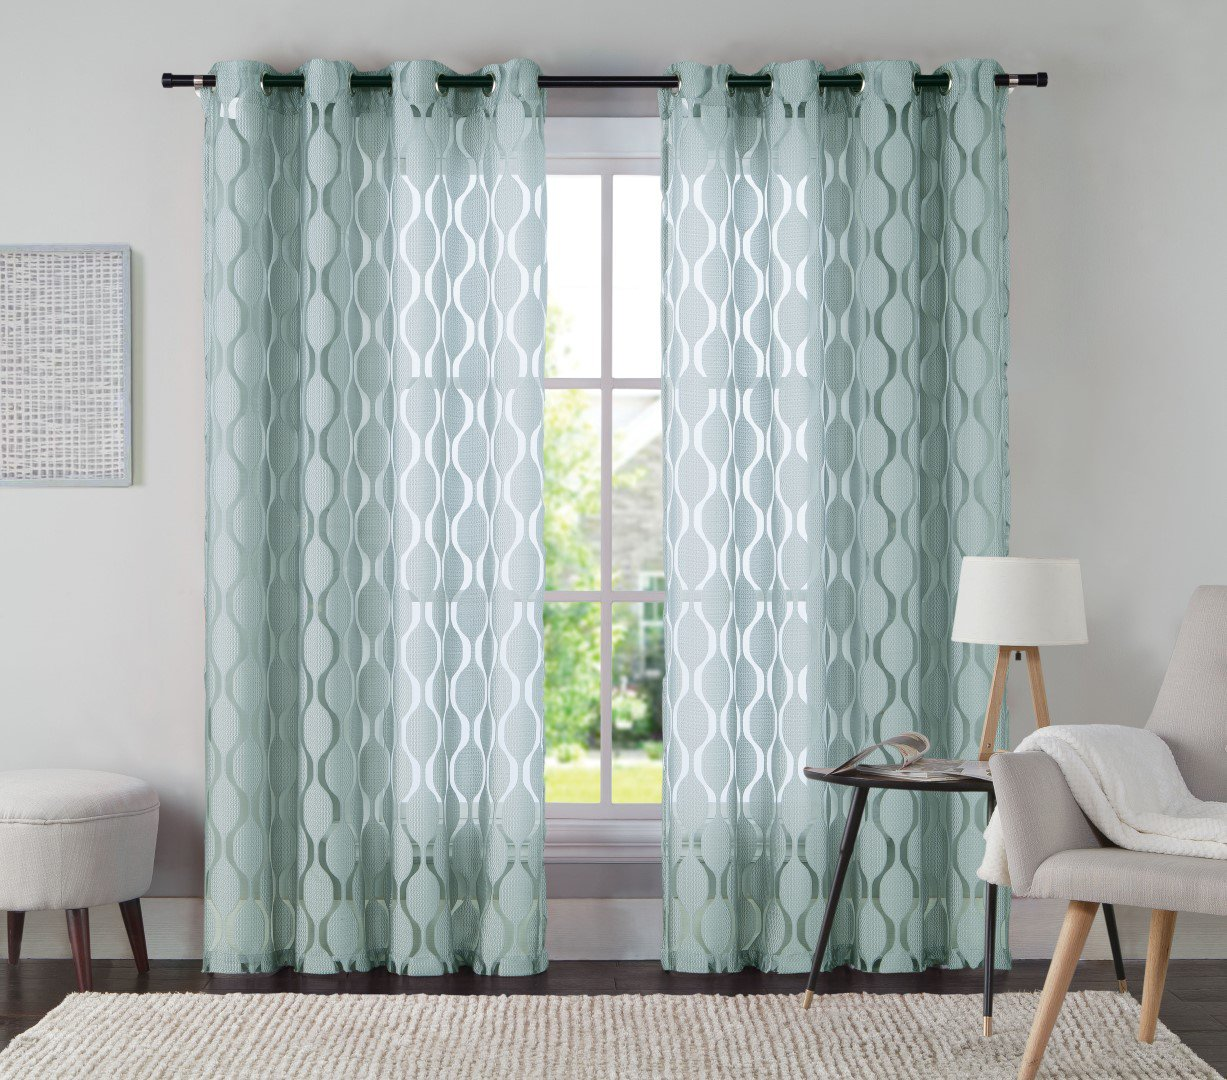 One (1) Jacquard Grommet Window Curtain Panel: 54'' x 84'' (Spa Blue)